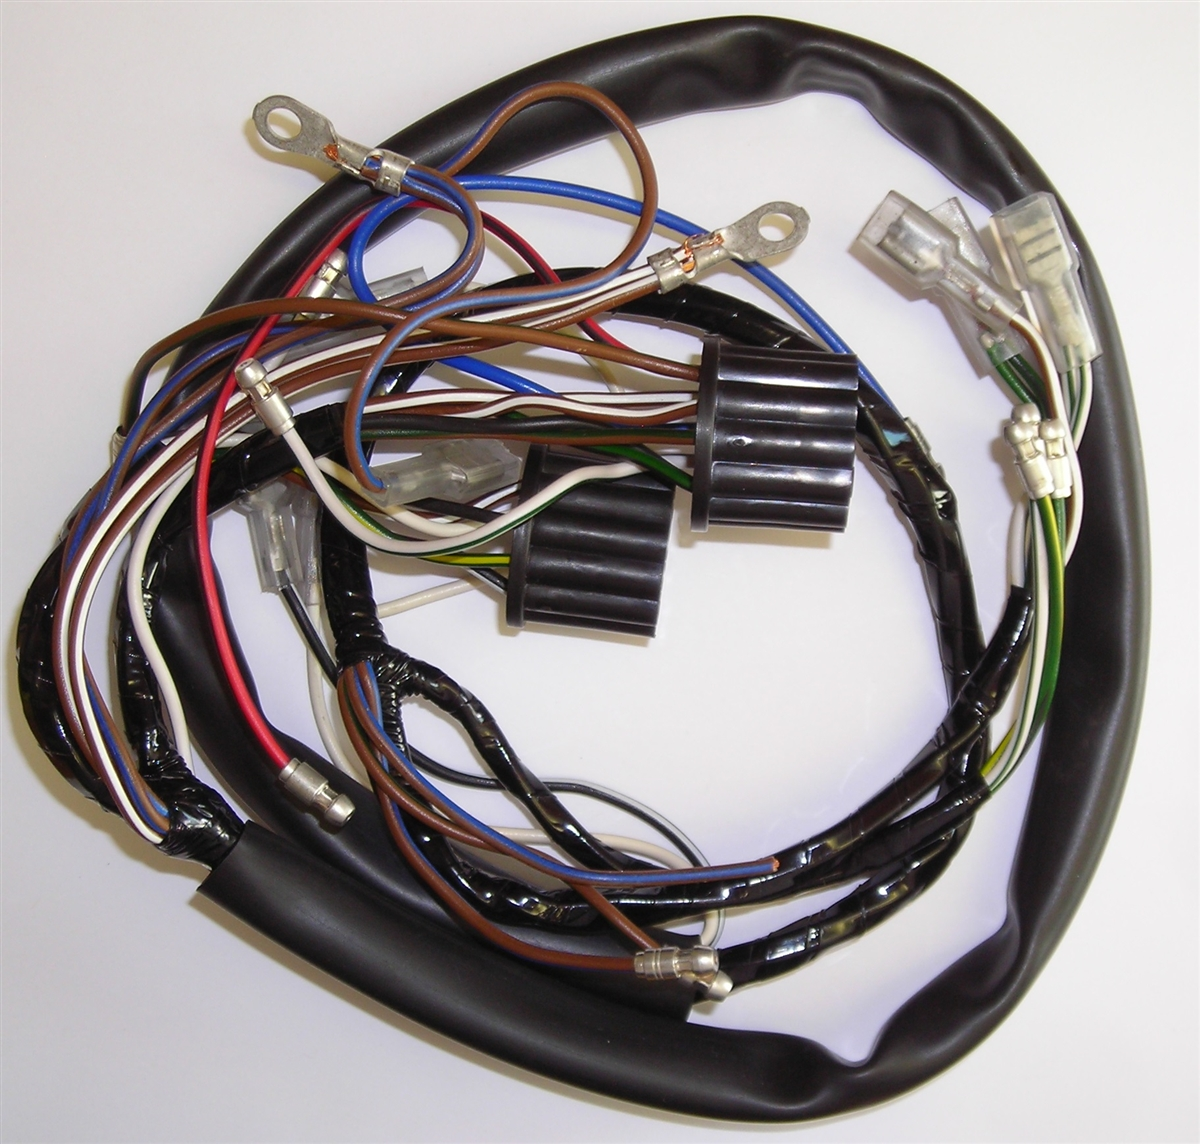 MC123PP 2?1374673704 motorcycle wiring harness motorcycle wiring harness at edmiracle.co